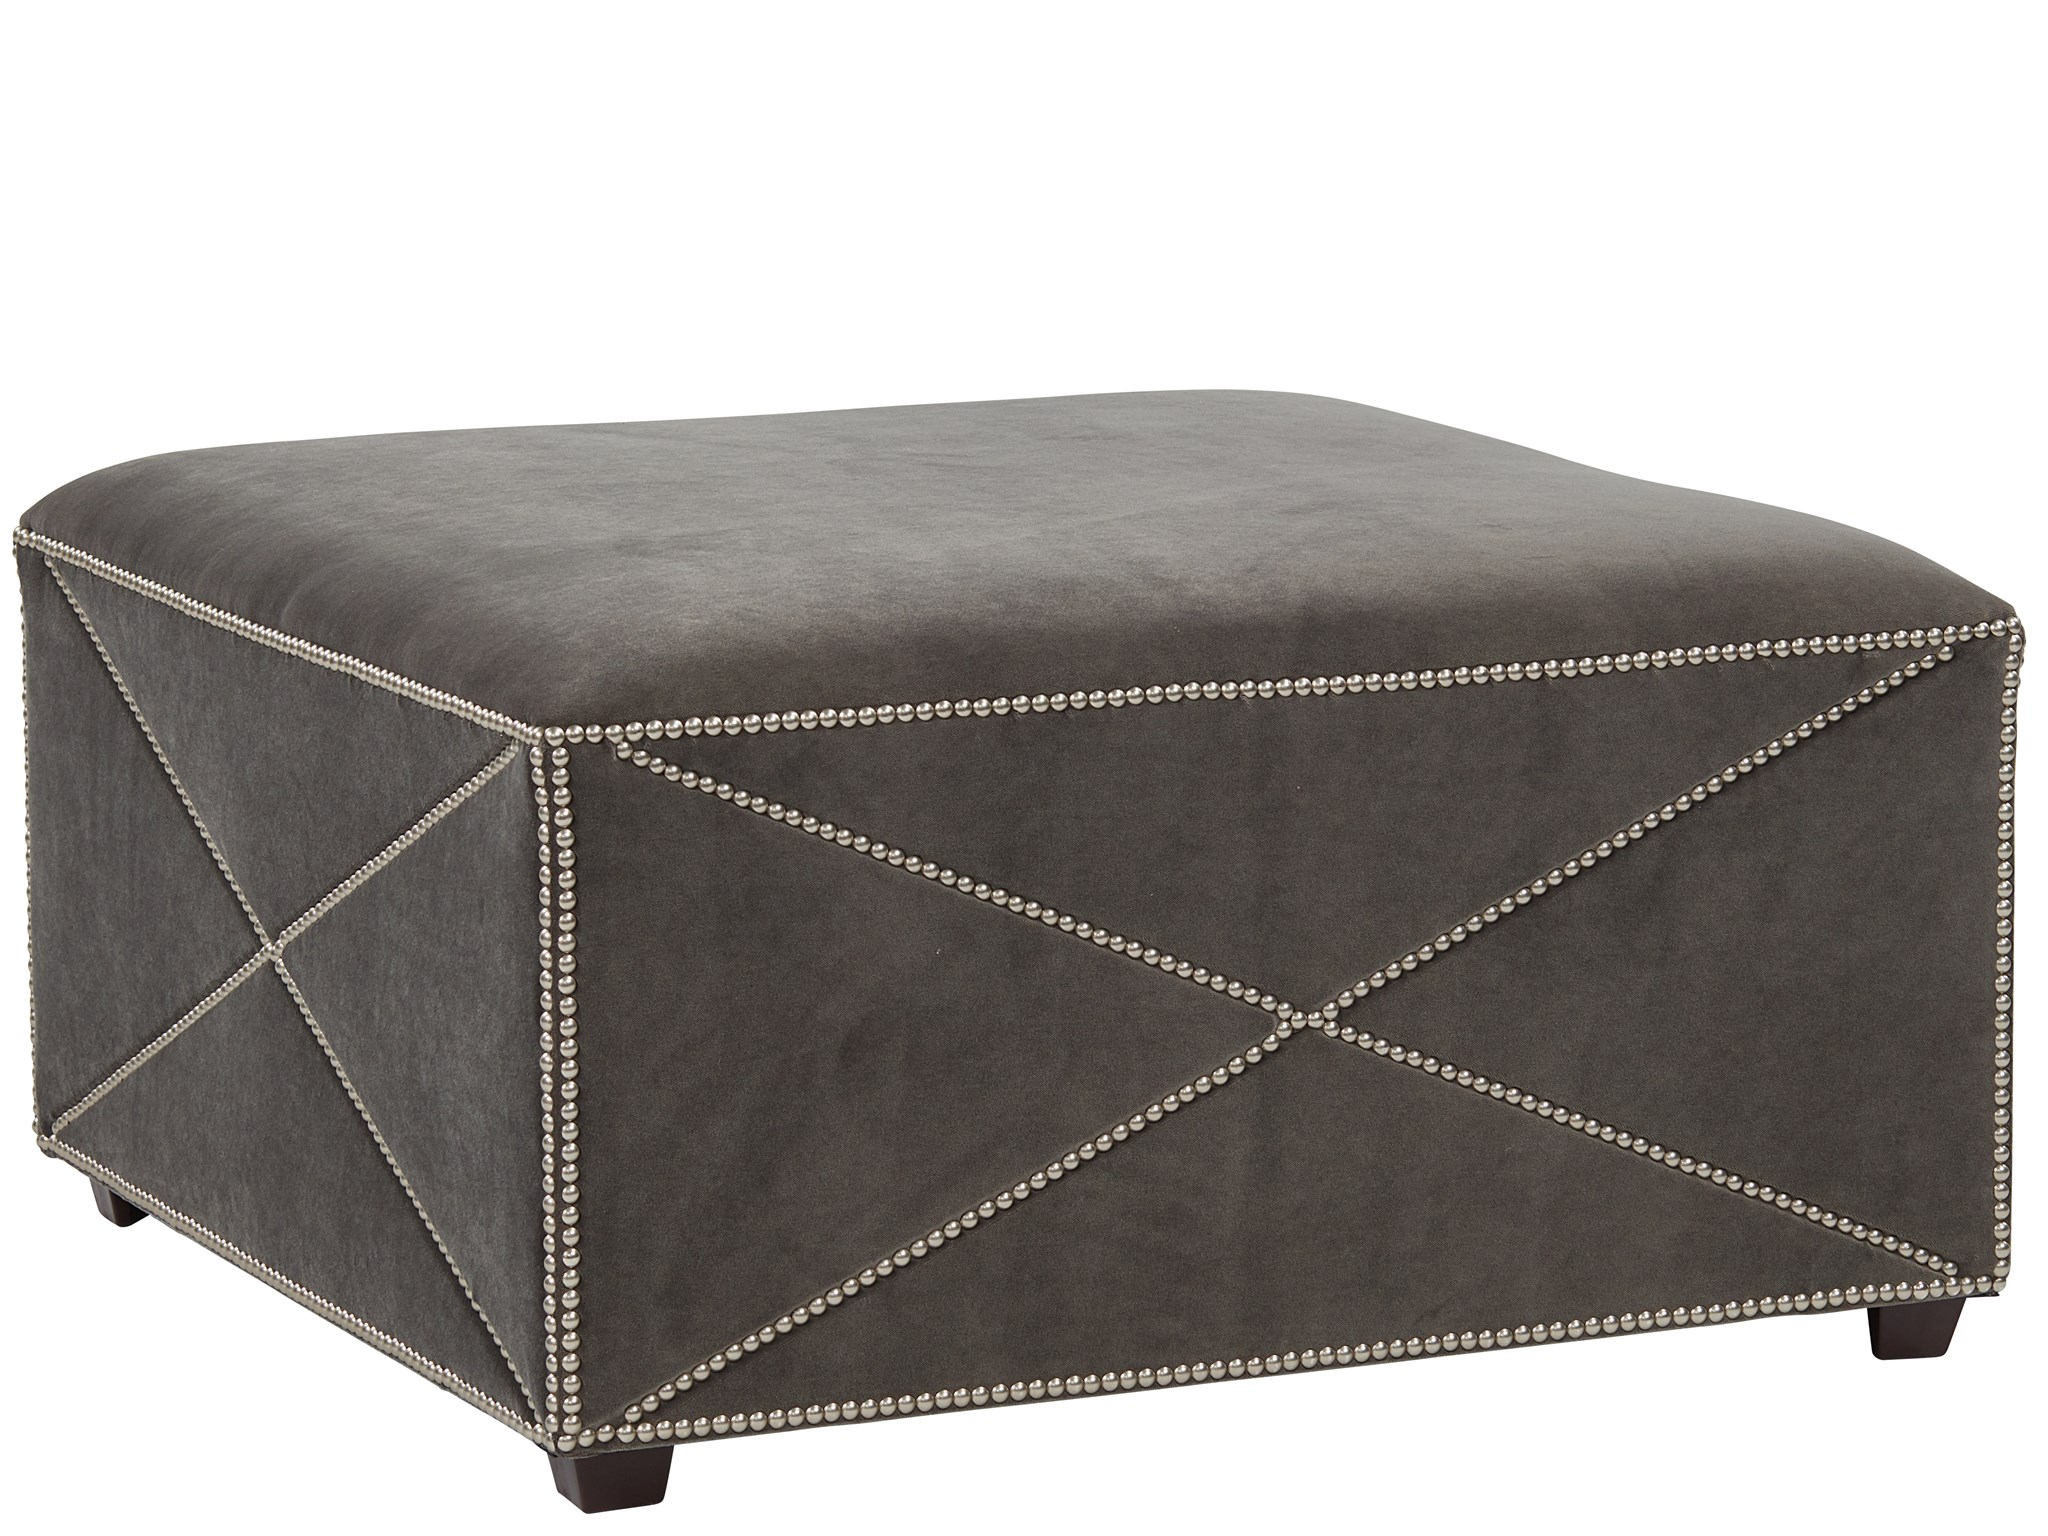 Ripley Square Cocktail Ottoman - Special Order